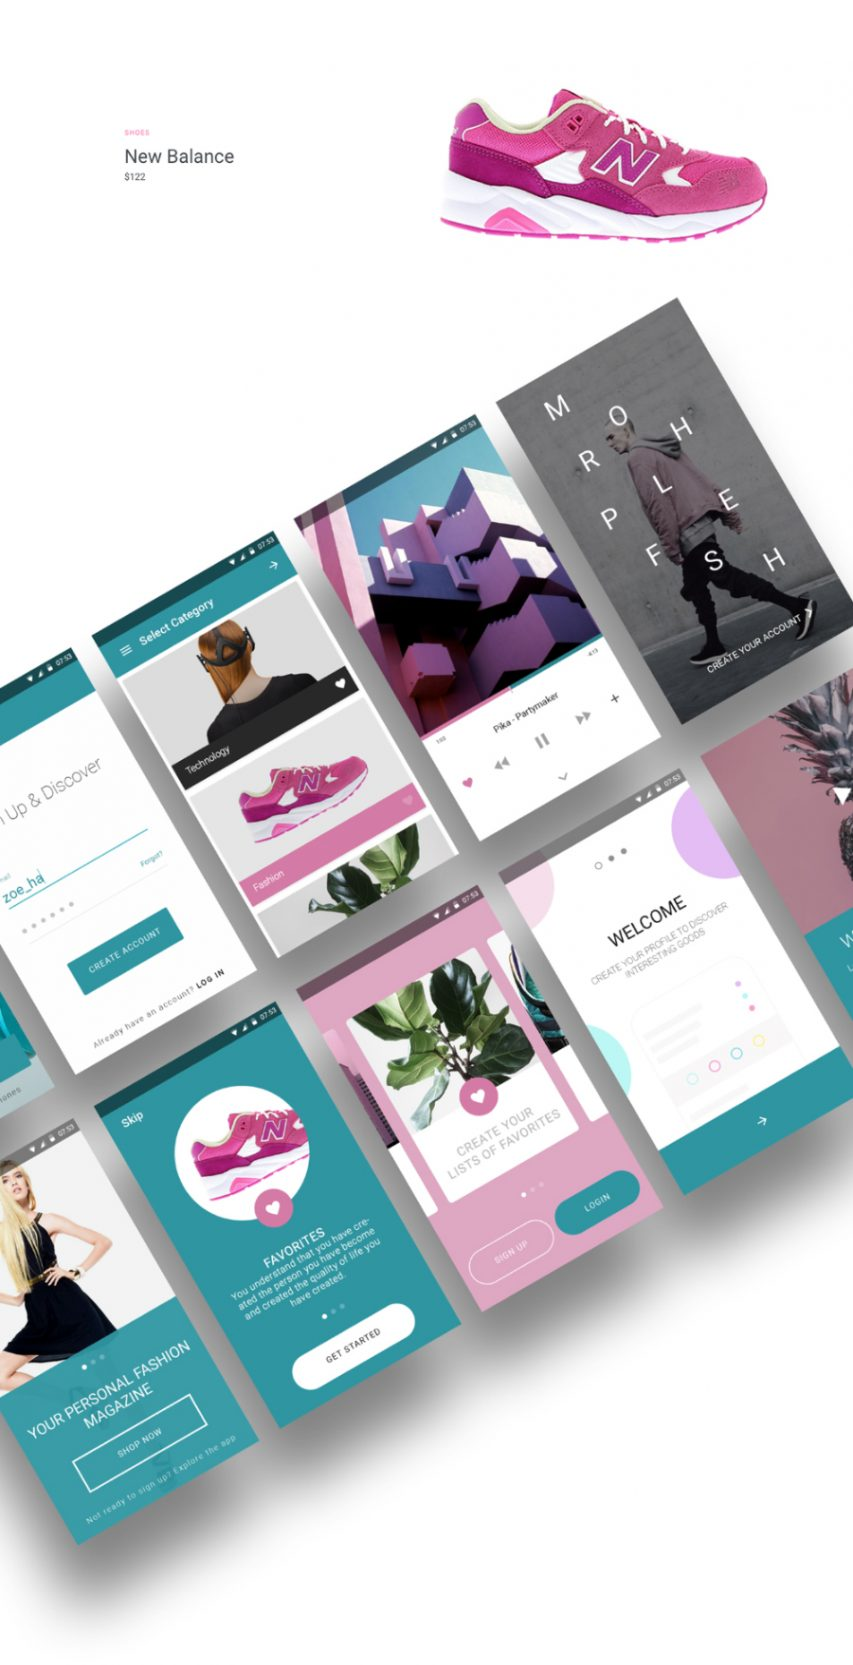 Modern Fashion App Material UI Kit Free PSD